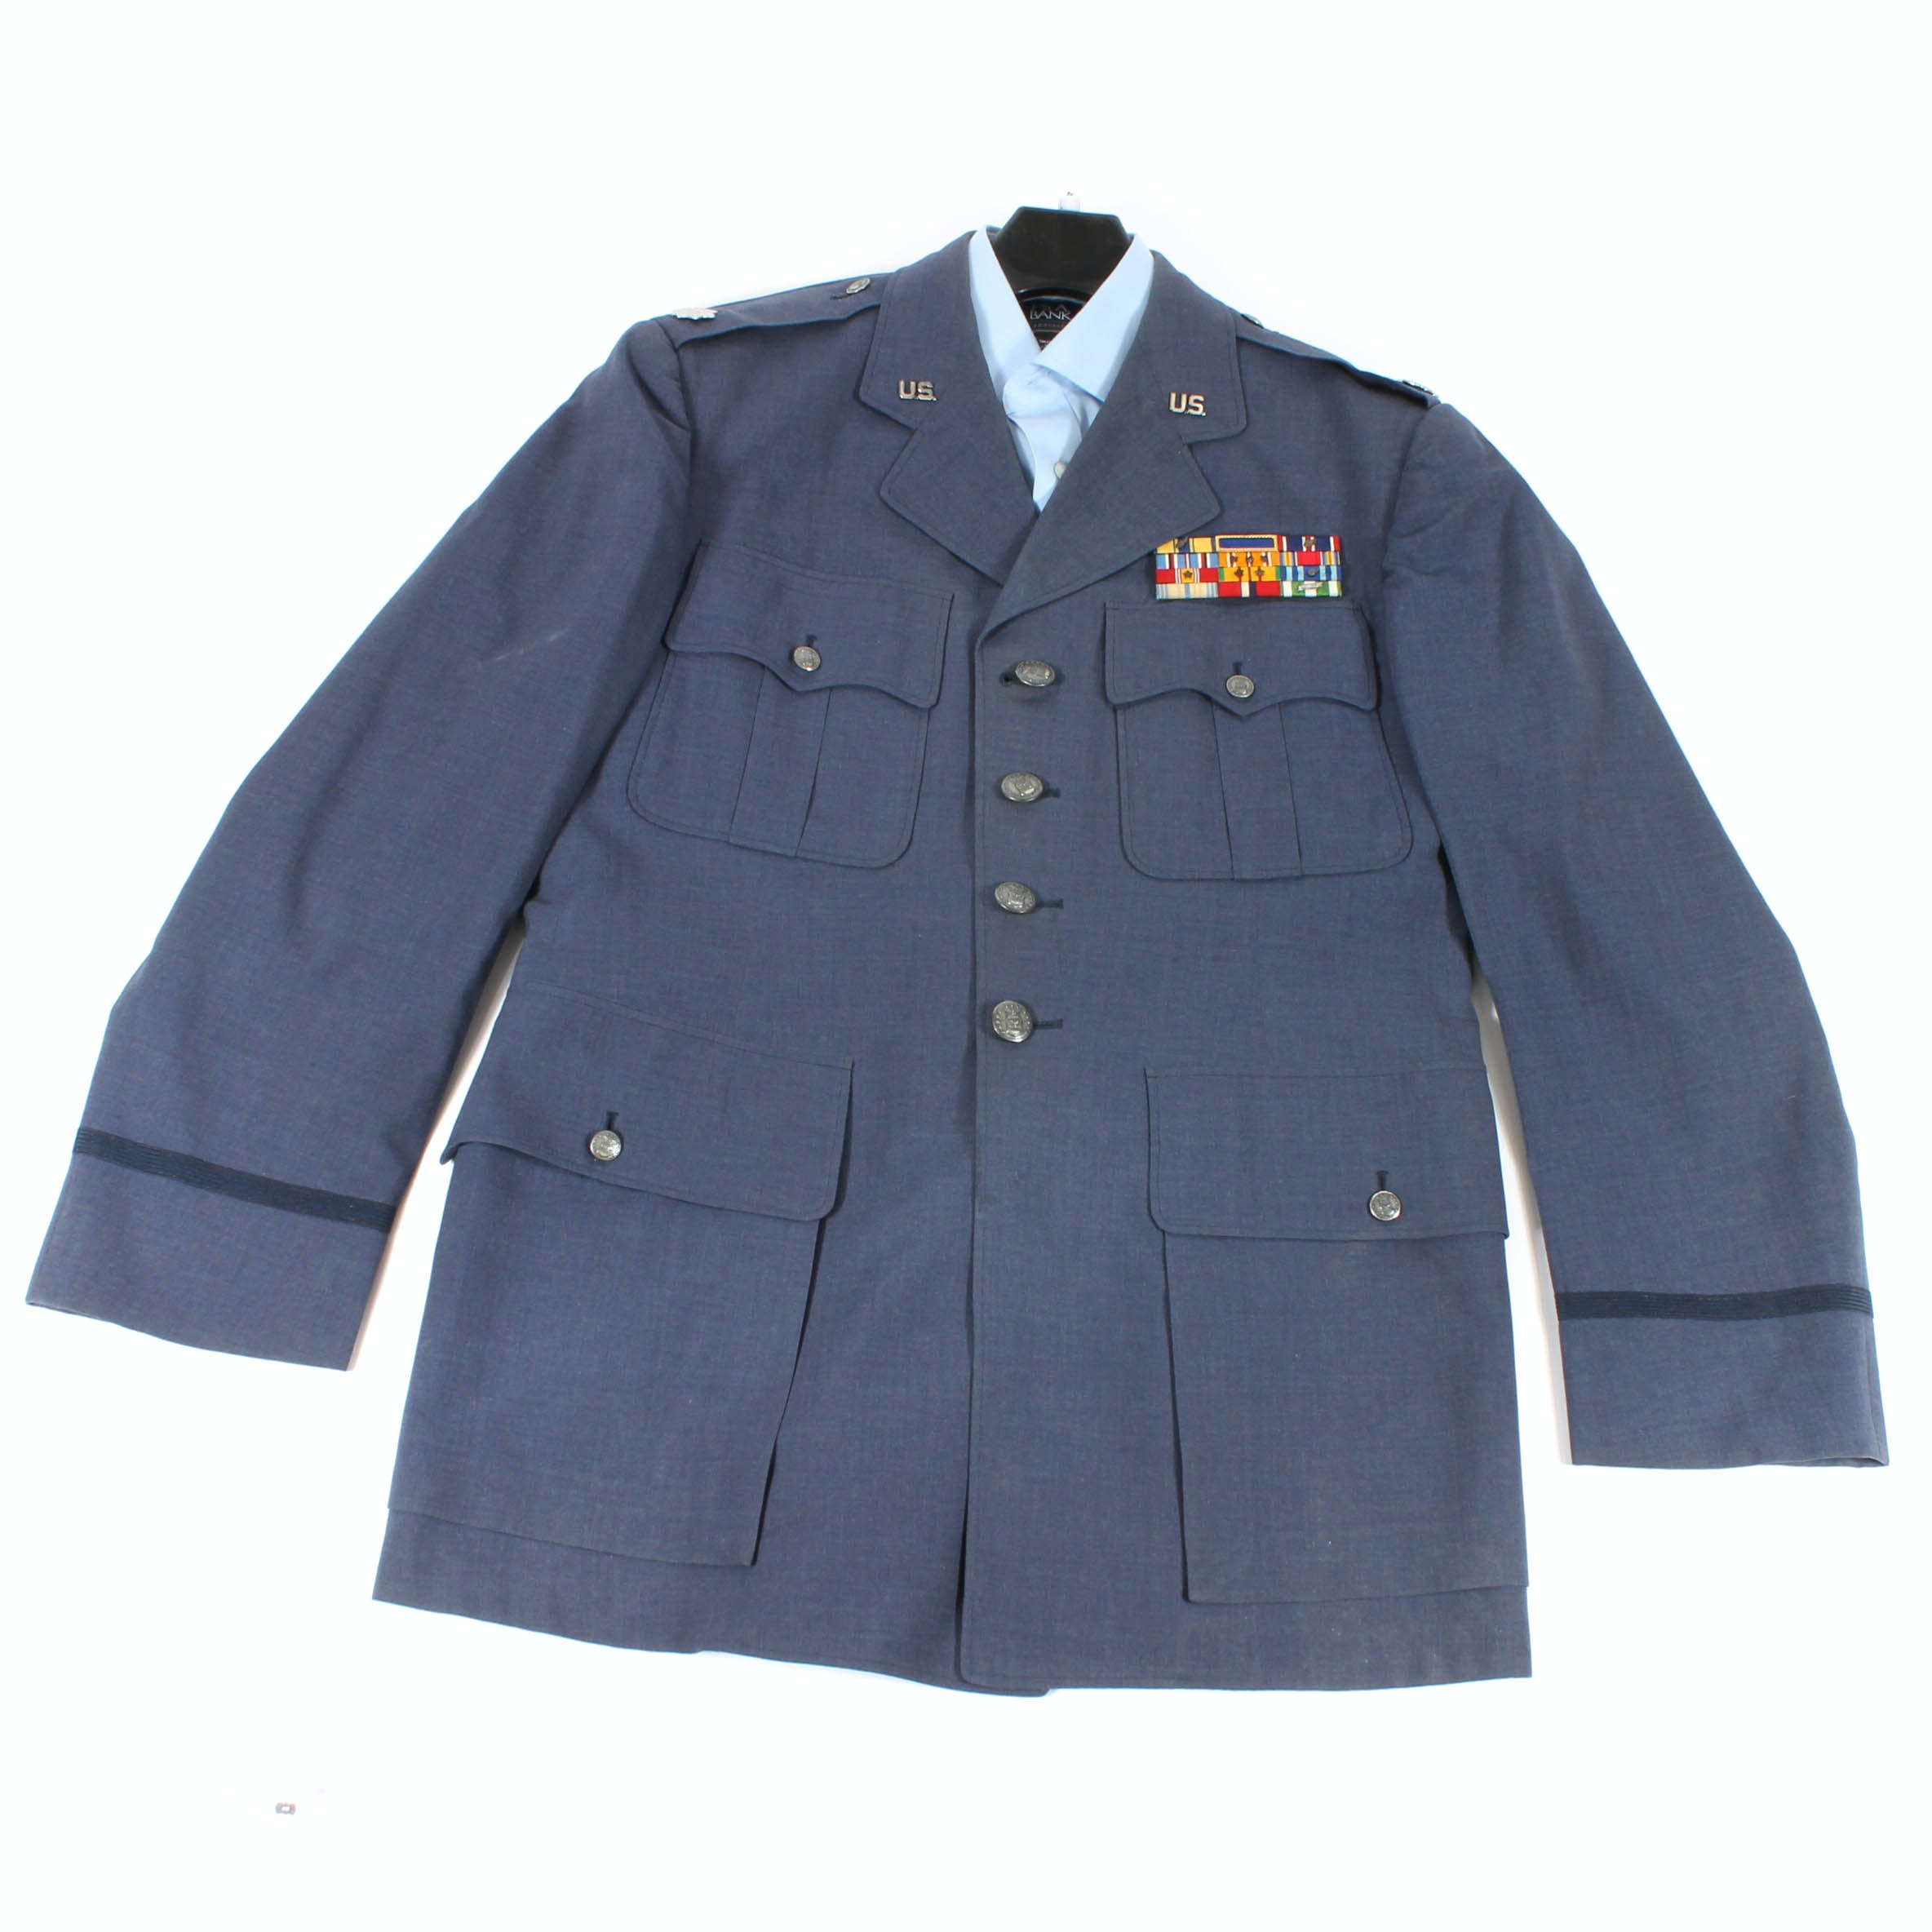 U.S. Air Force Lieutenant Colonel Service Dress Coat and Shirt